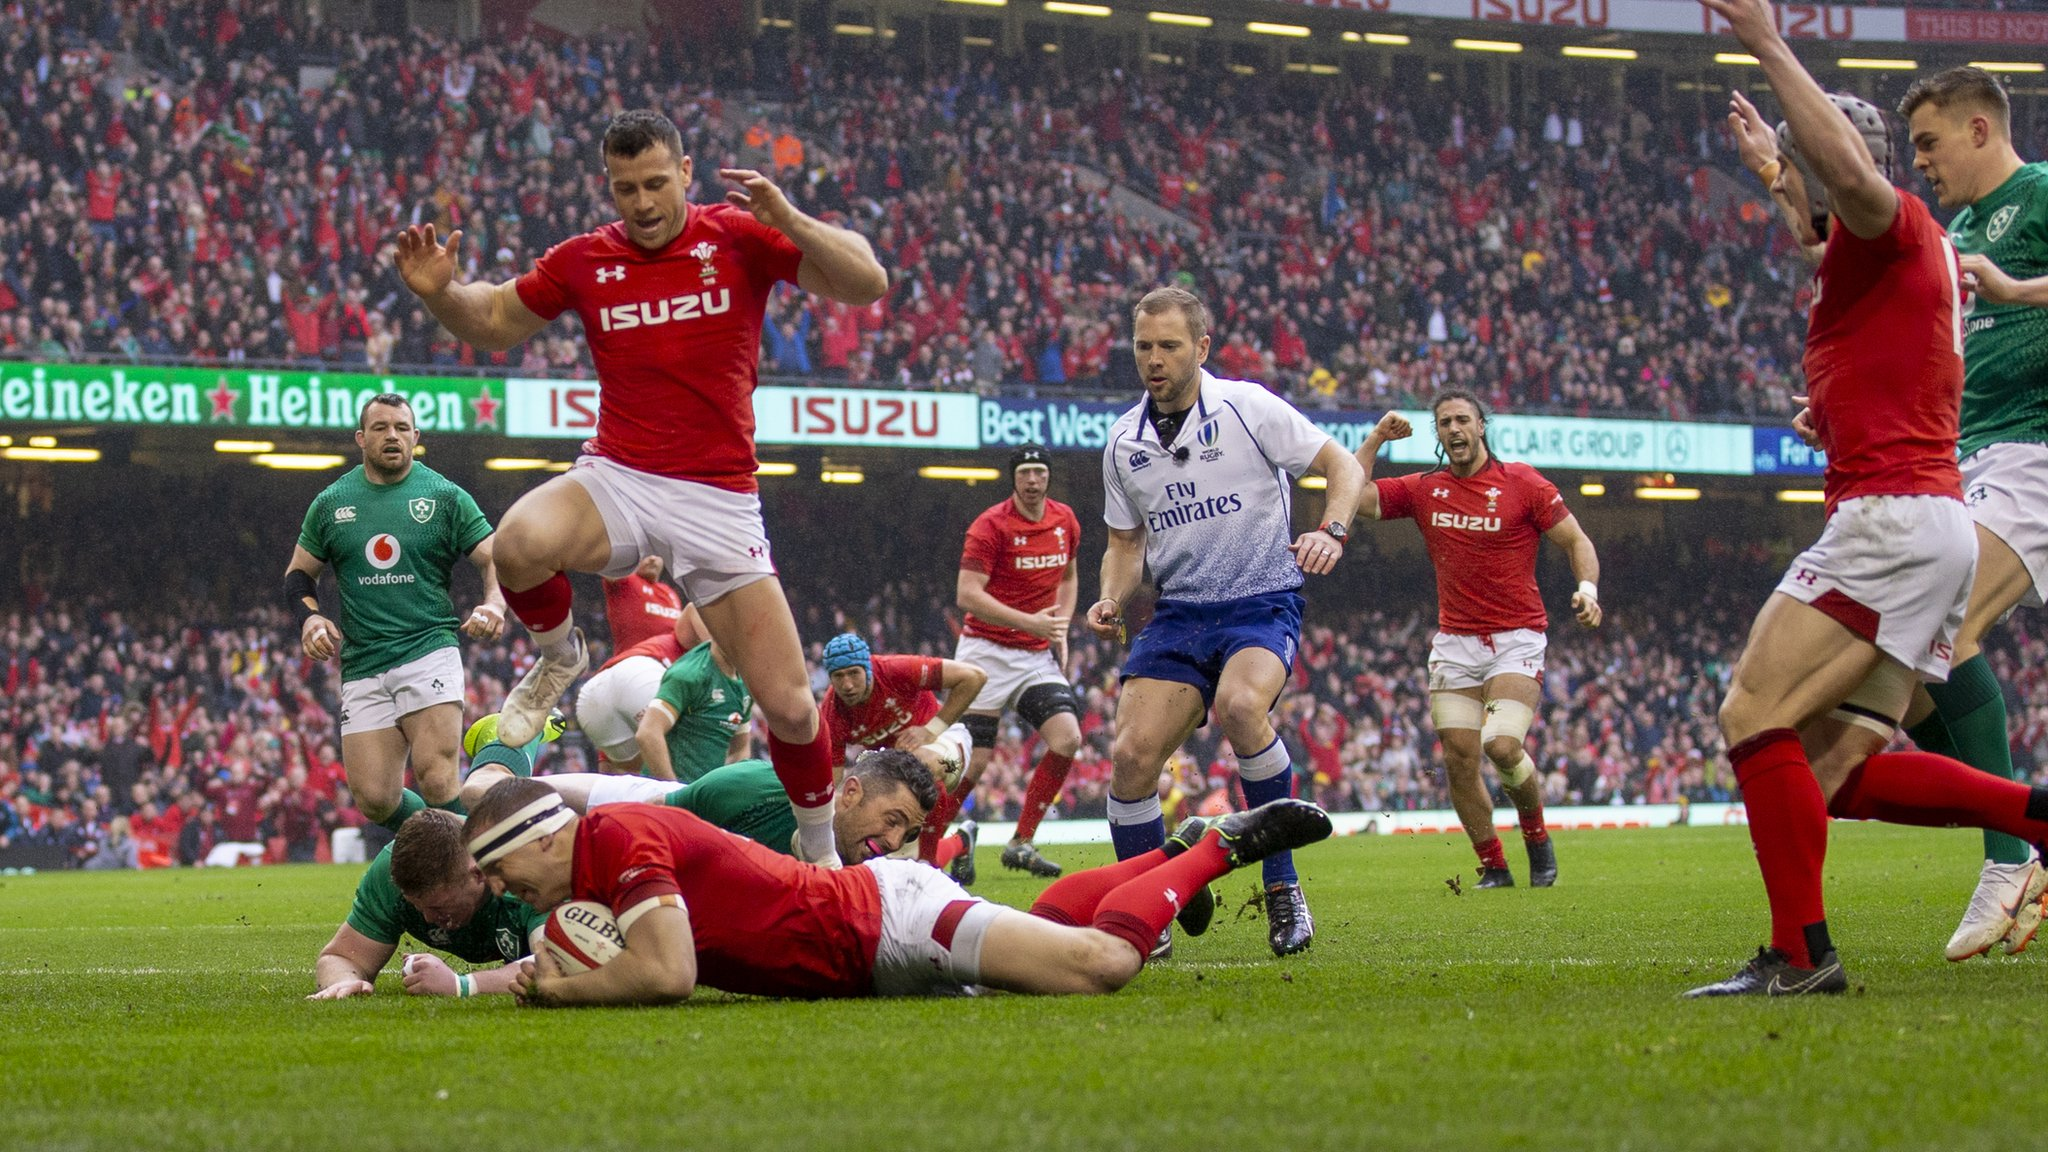 Rugby World Cup 2019: Where do home nations stand after Six Nations?